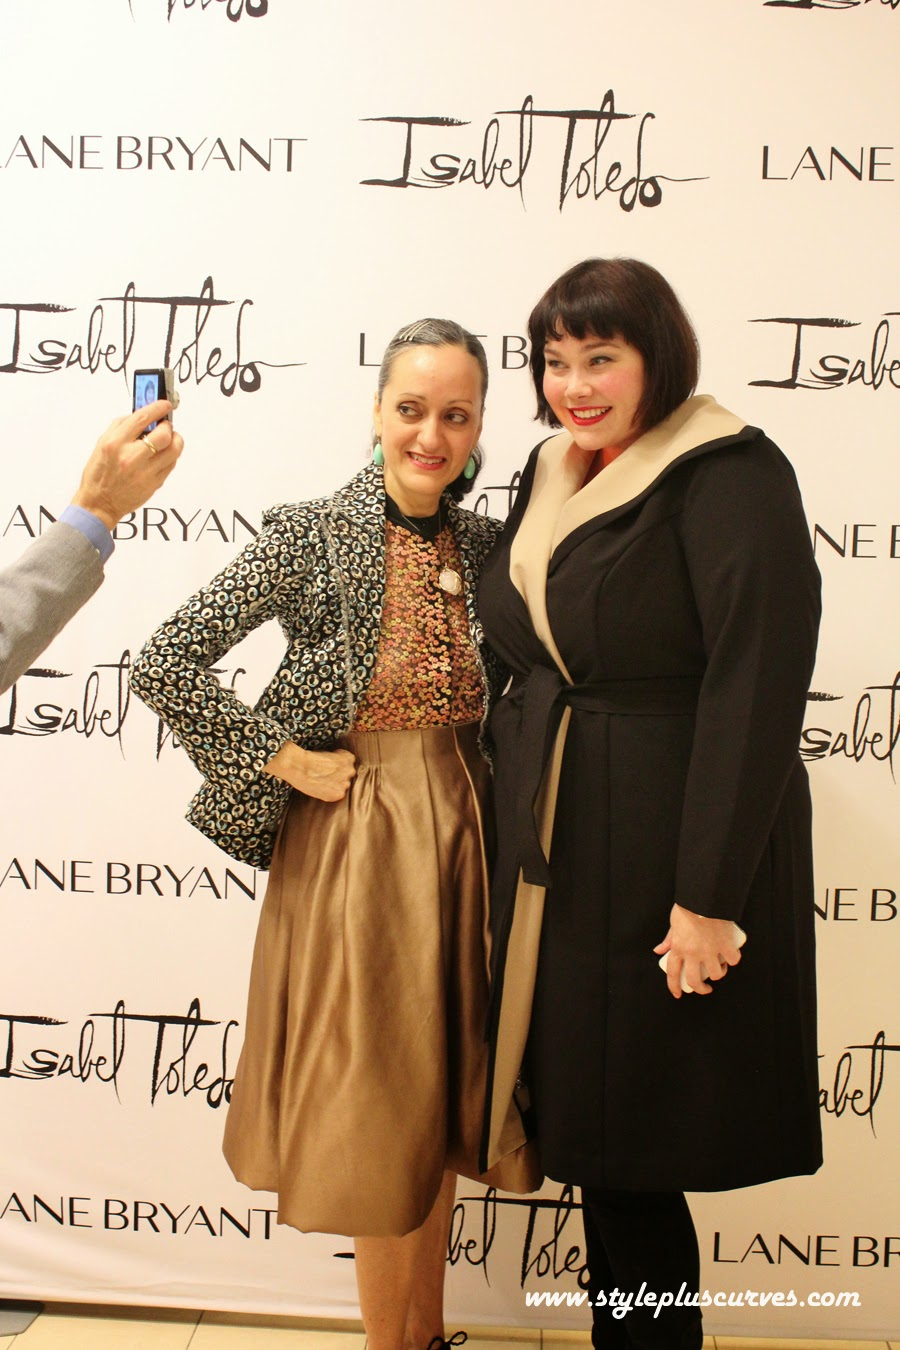 Amber from Style Plus Curves in the Isabel Toledo Luxe Wrap Coat from Lane Bryant